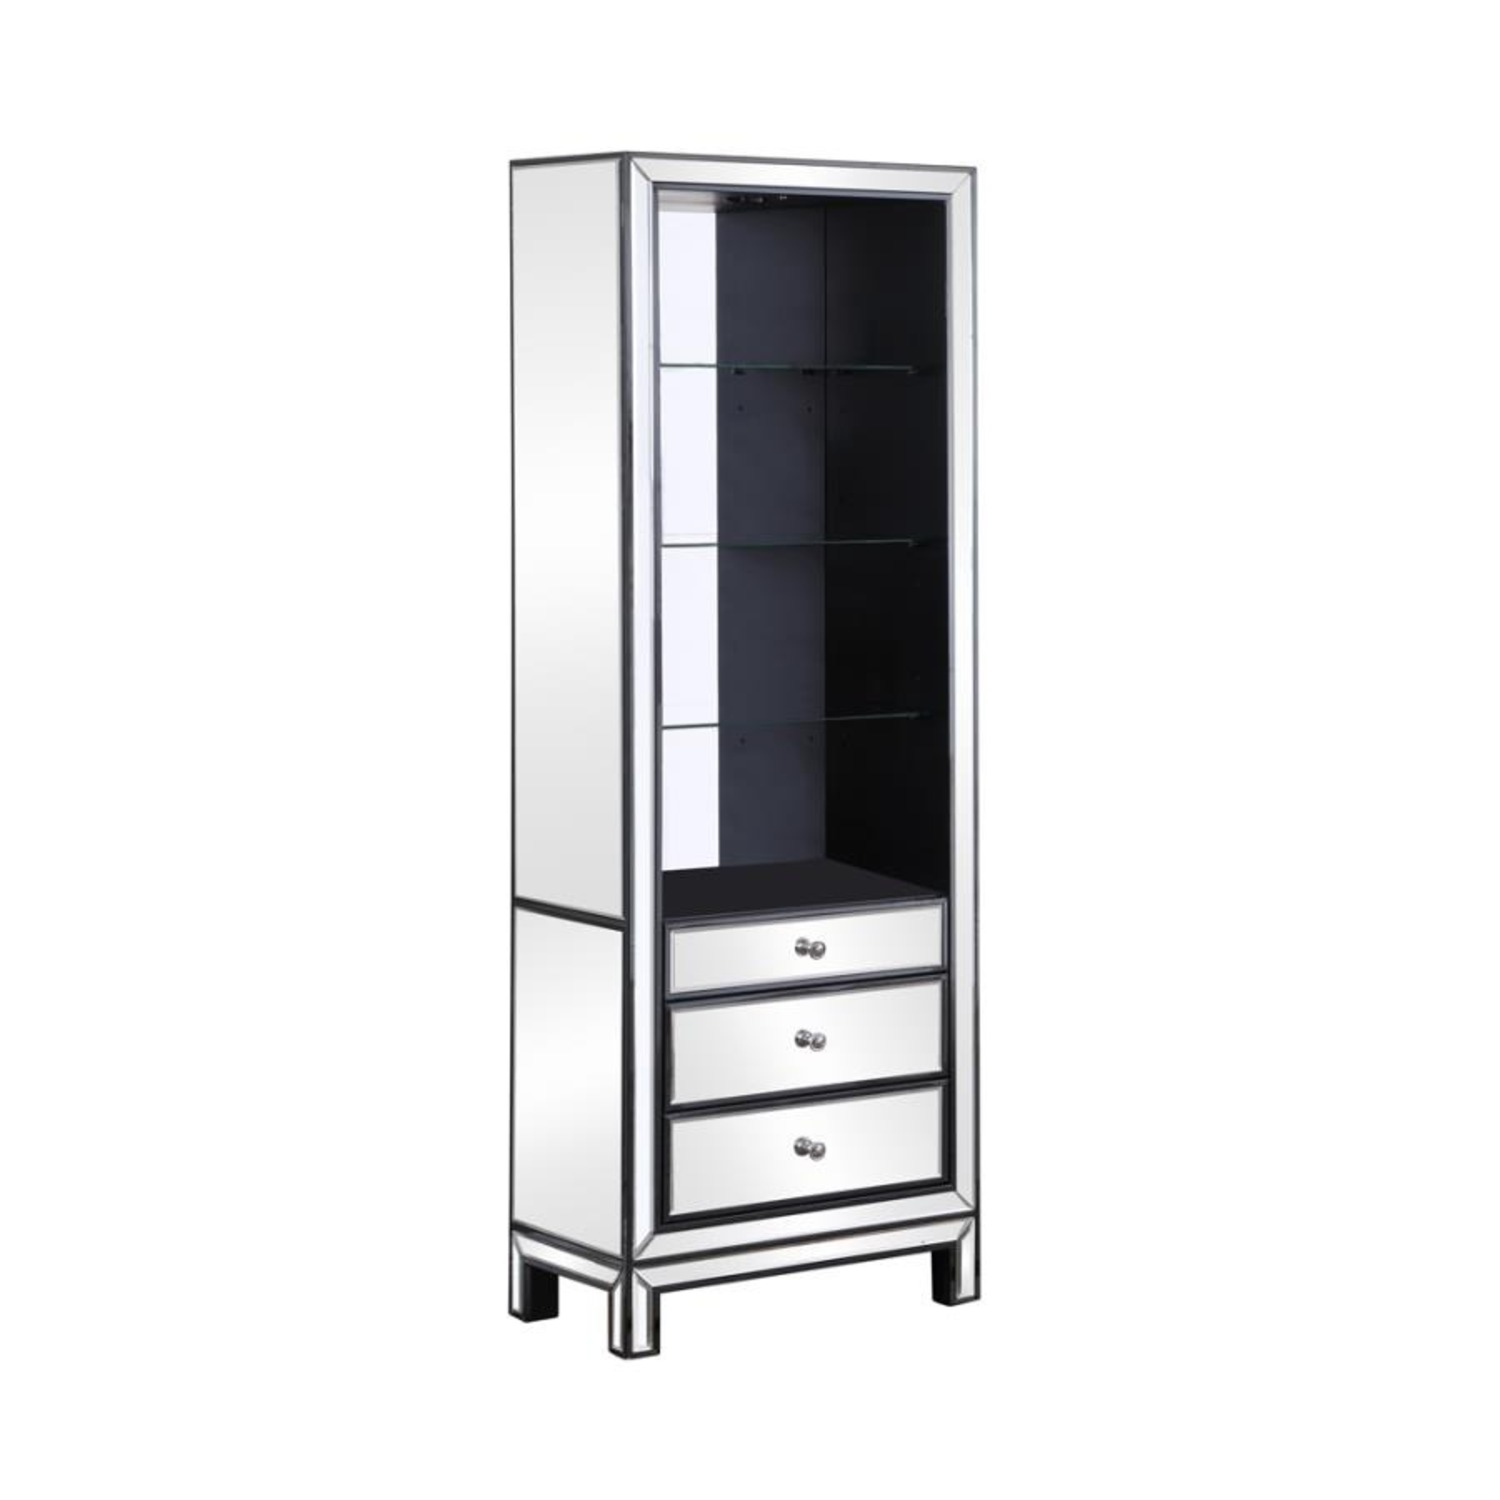 Media Tower W/ Glass Shelves In Silver Finish - image-0